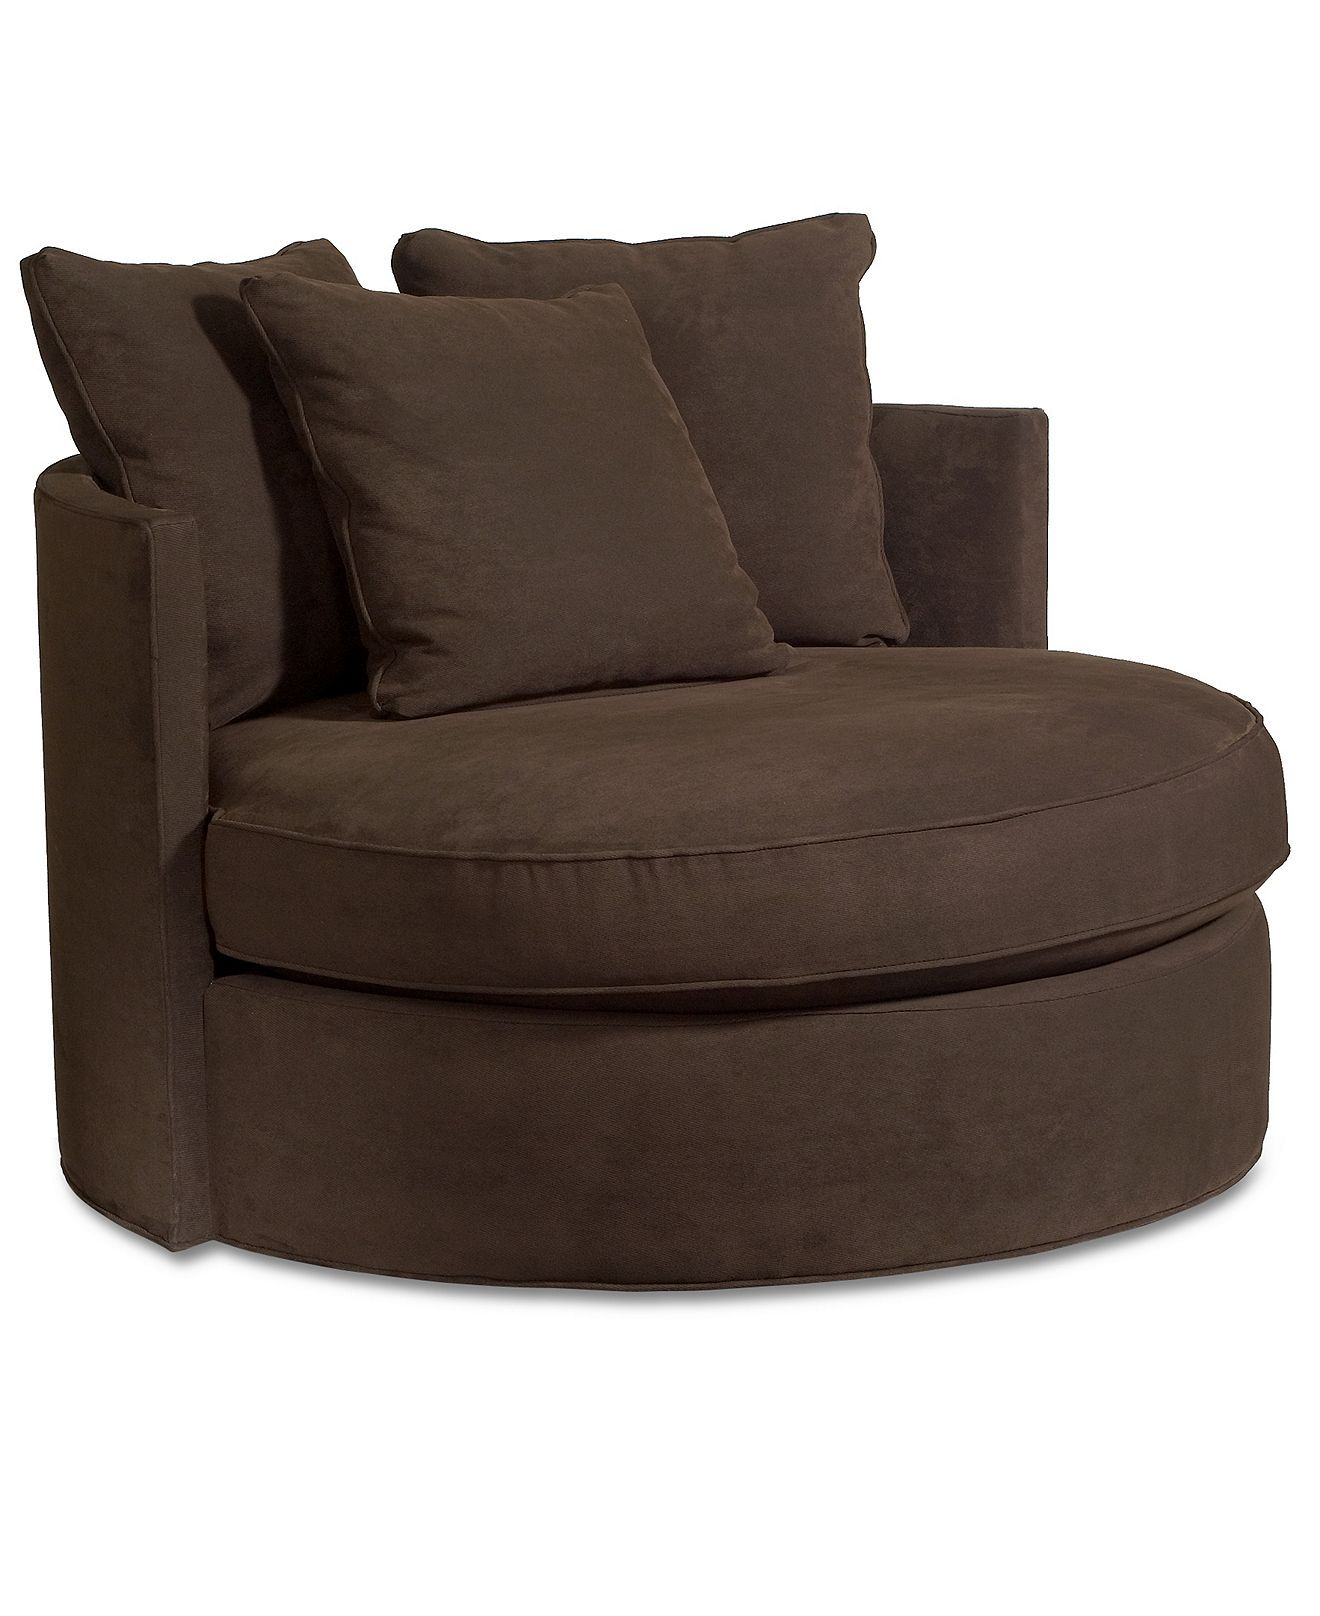 Doss Godiva Fabric Microfiber Round Swivel Living Room